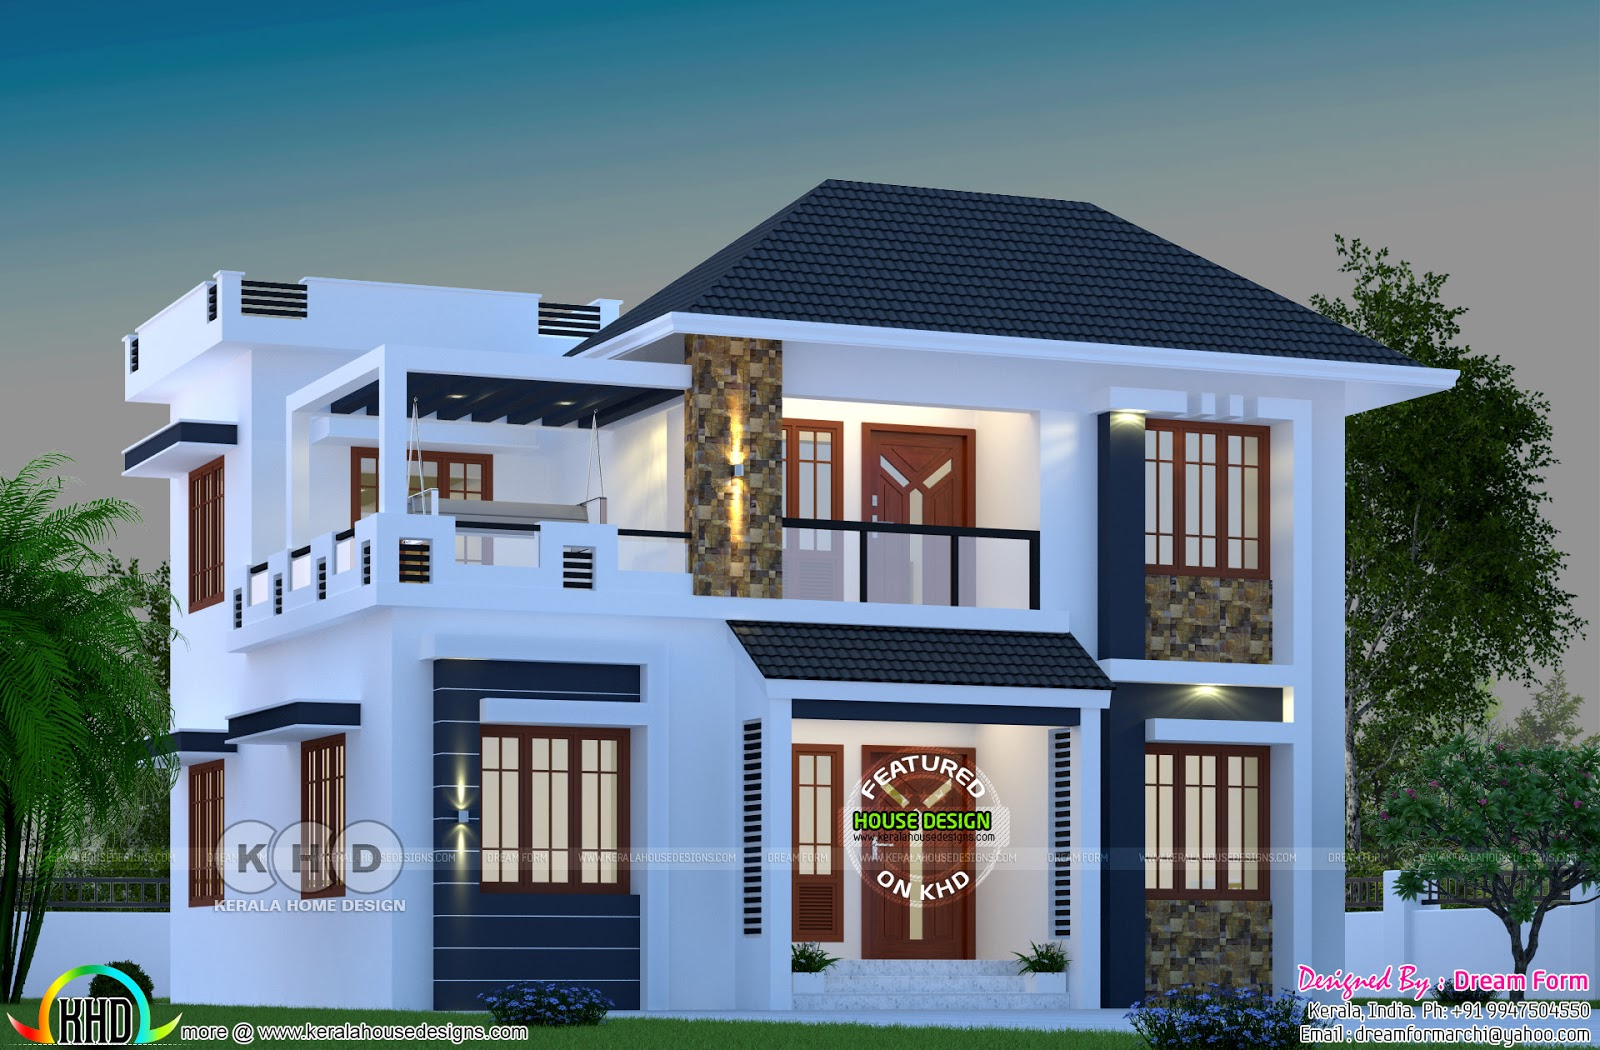 1744 square feet modern kerala home with 4 bedrooms - Khd Home Design